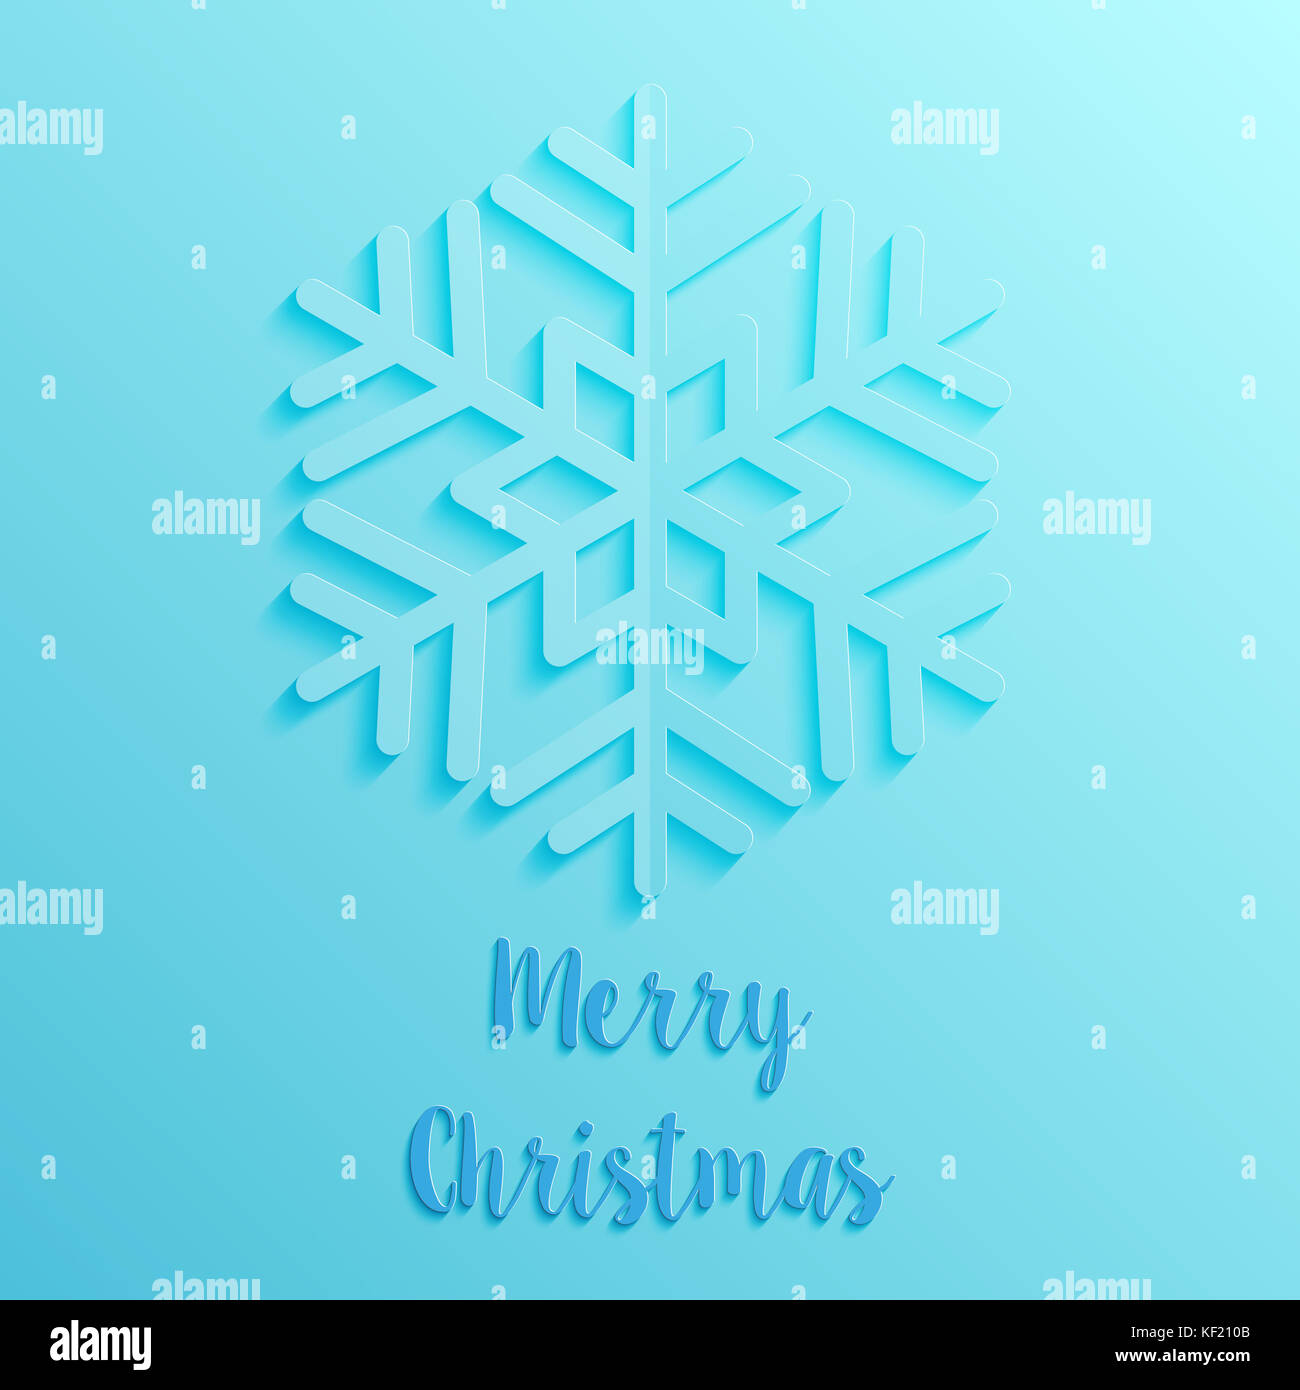 blue paper cut style merry christmas card Stock Photo: 164157851 - Alamy